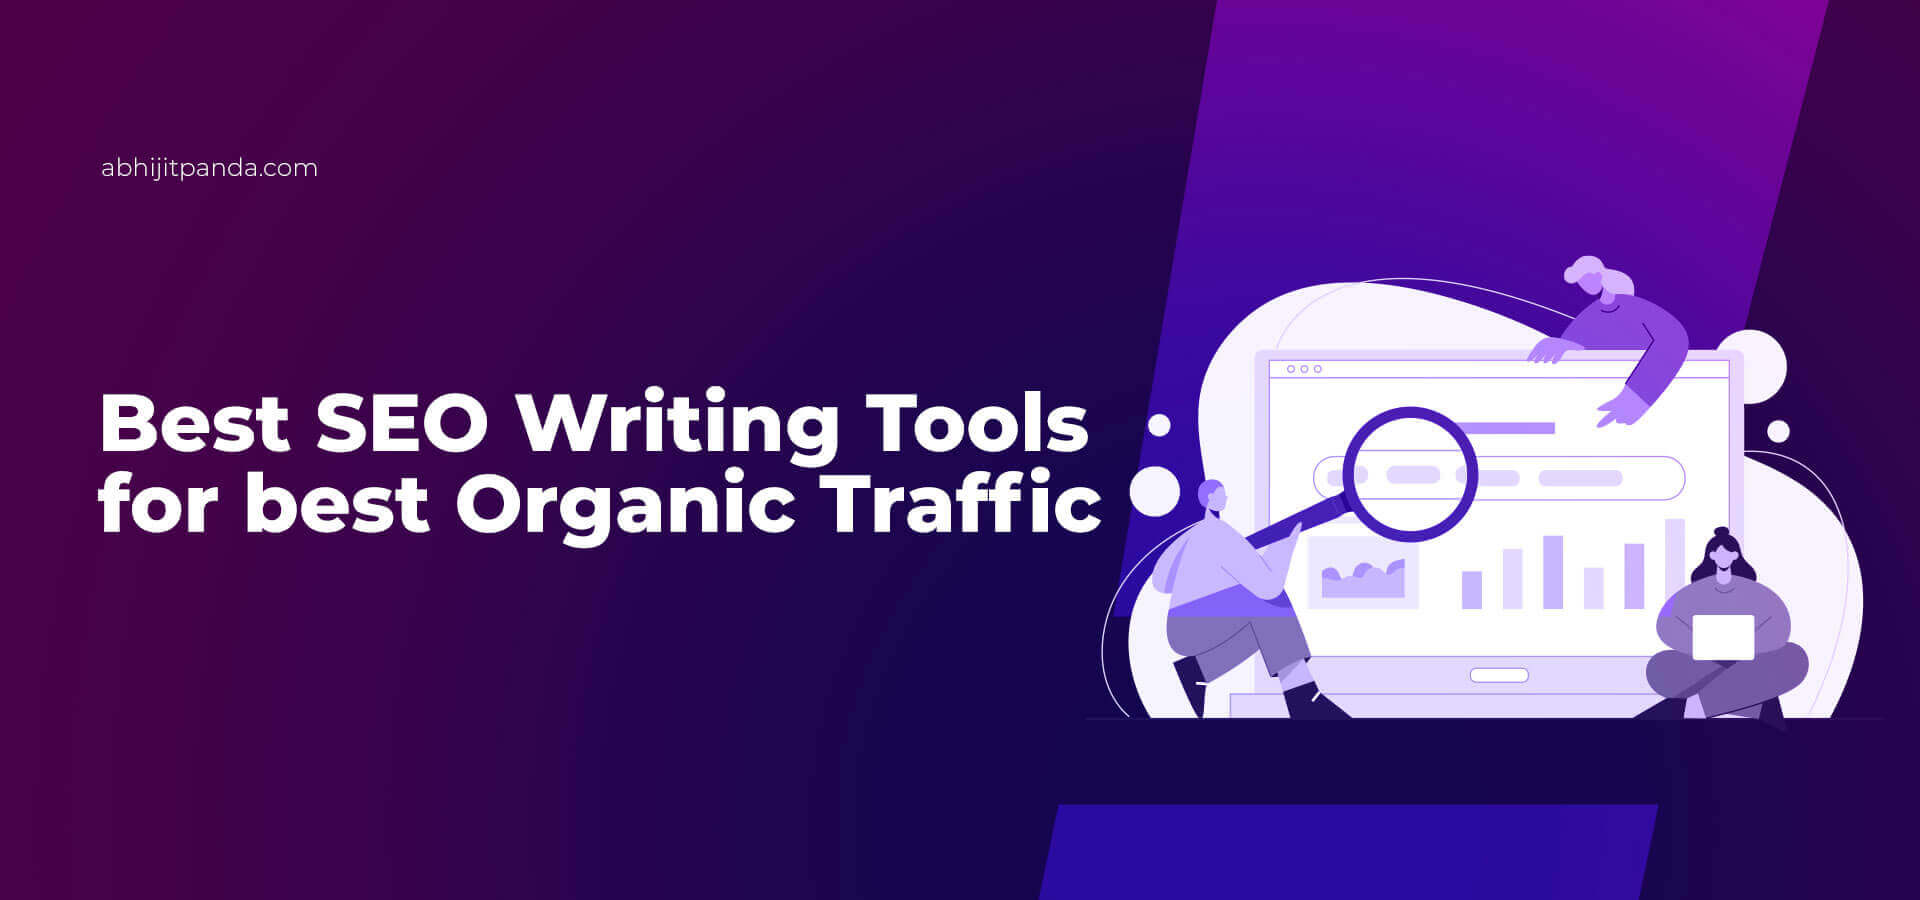 Best SEO Writing Tools for better Organic Ranking